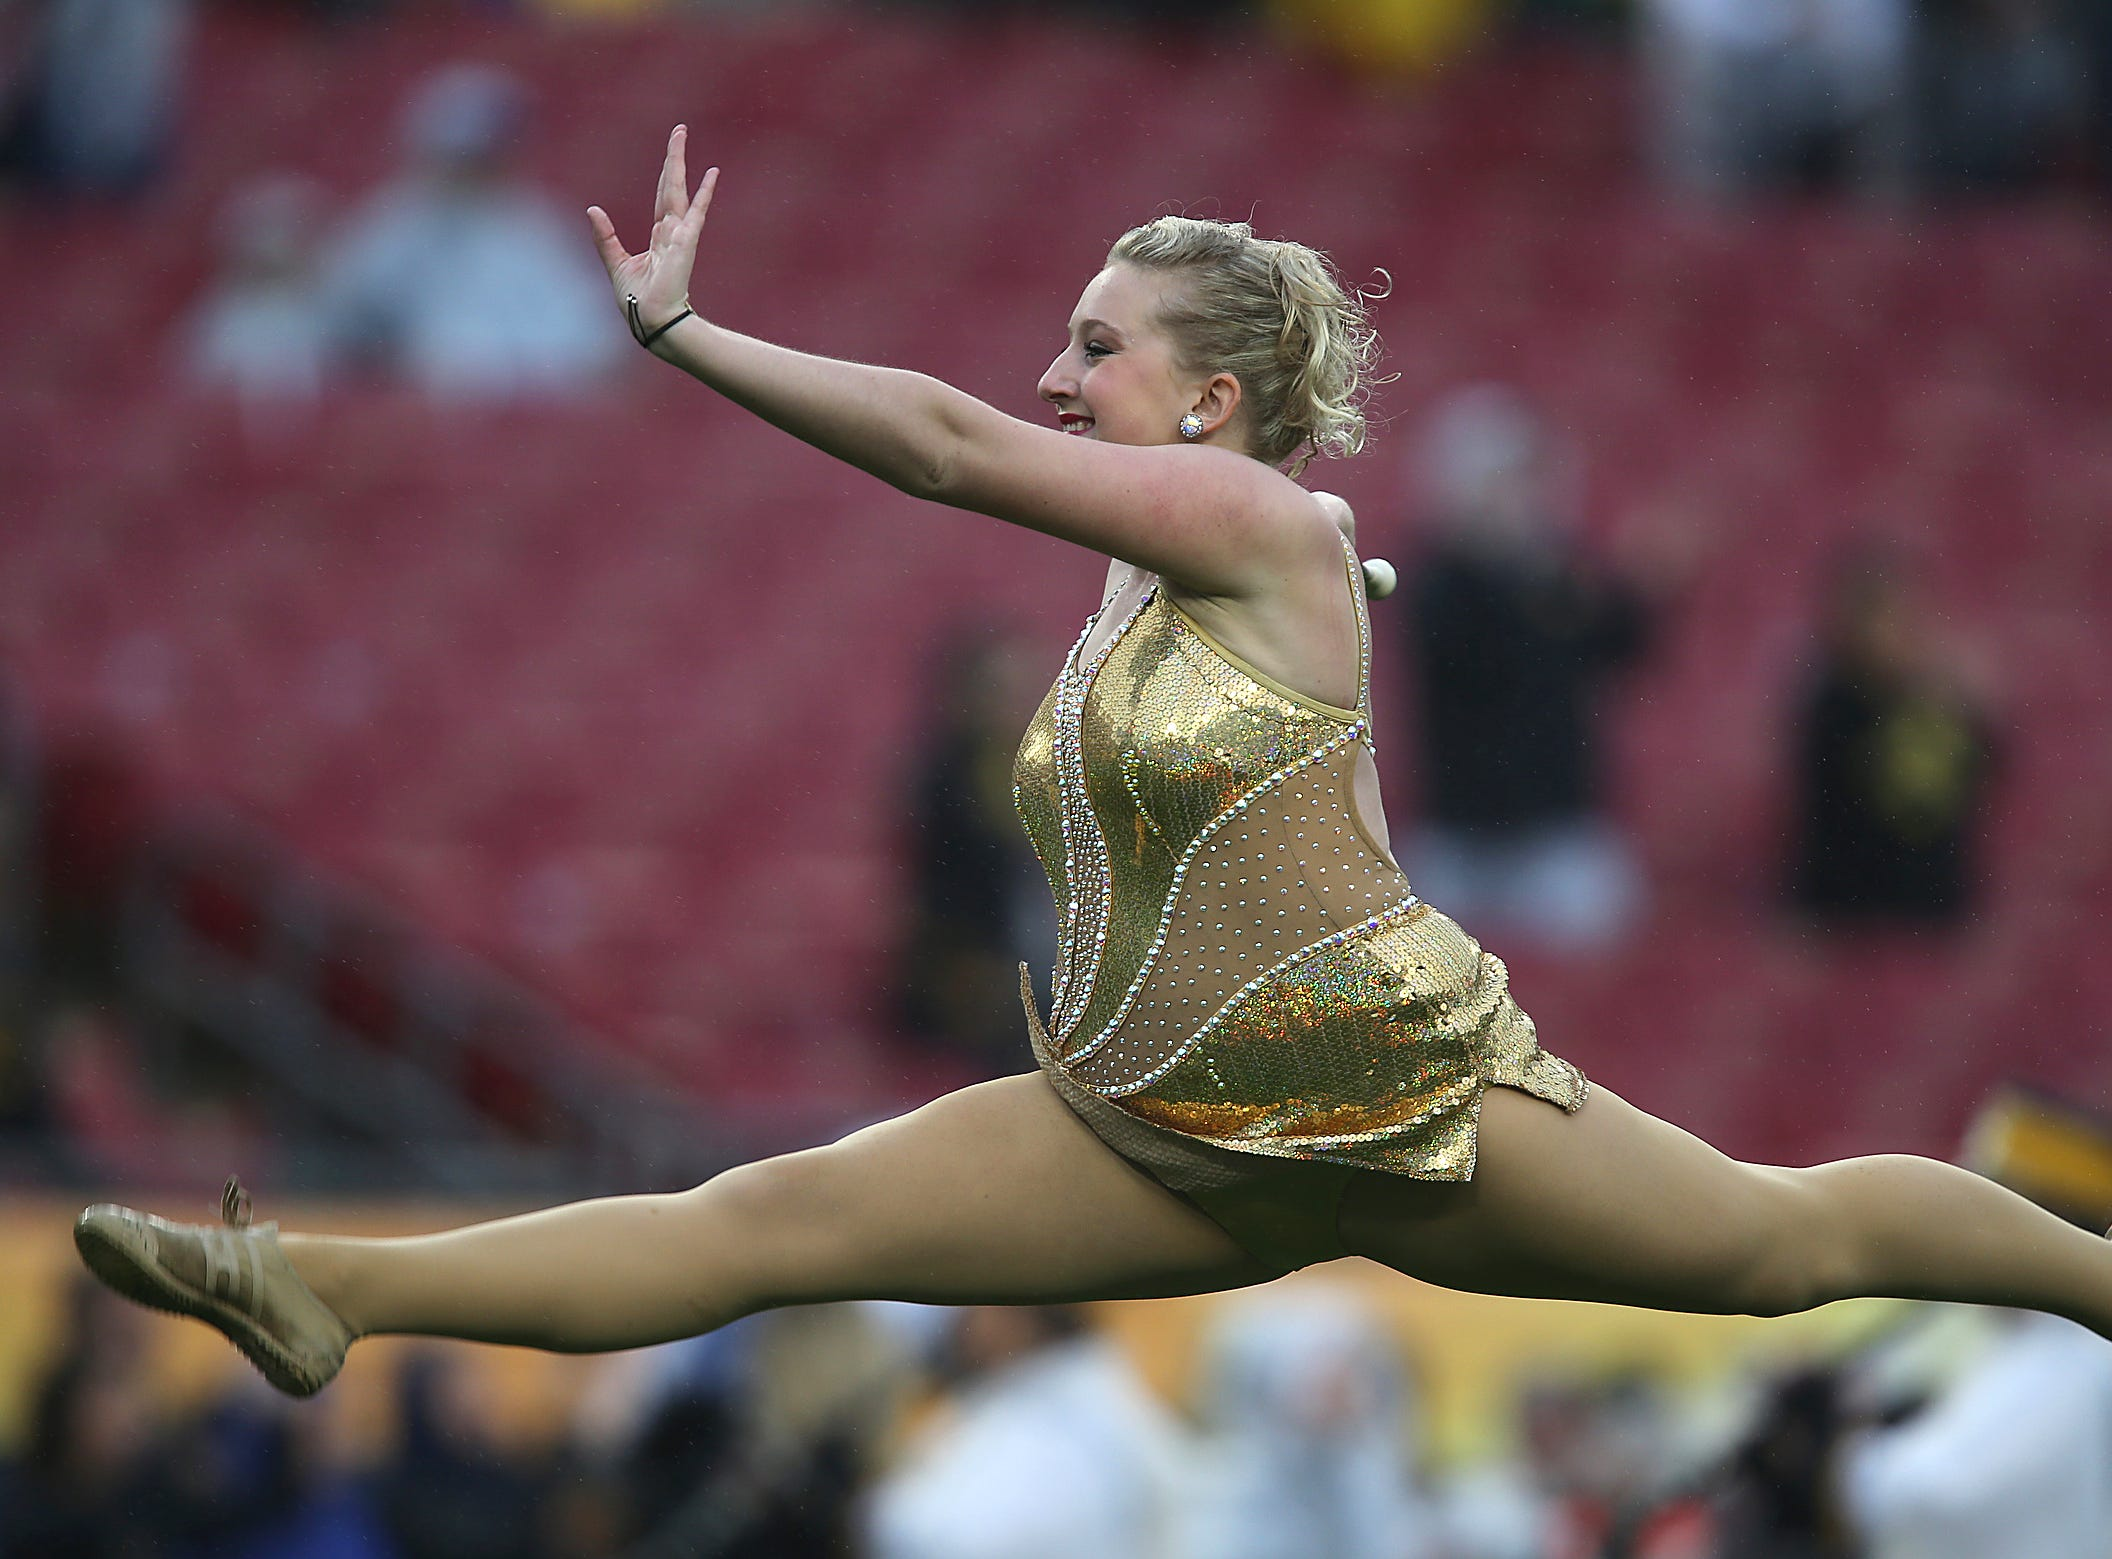 Iowa Golden Girl Whittney Seckar-Anderson, of Oshkosh, Wis., performs a routine during the Iowa Marching Band's pre-game performance prior to kickoff with LSU in the Outback Bowl on Wednesday, Jan. 1, 2014, in Tampa, Florida. (Bryon Houlgrave/The Register)